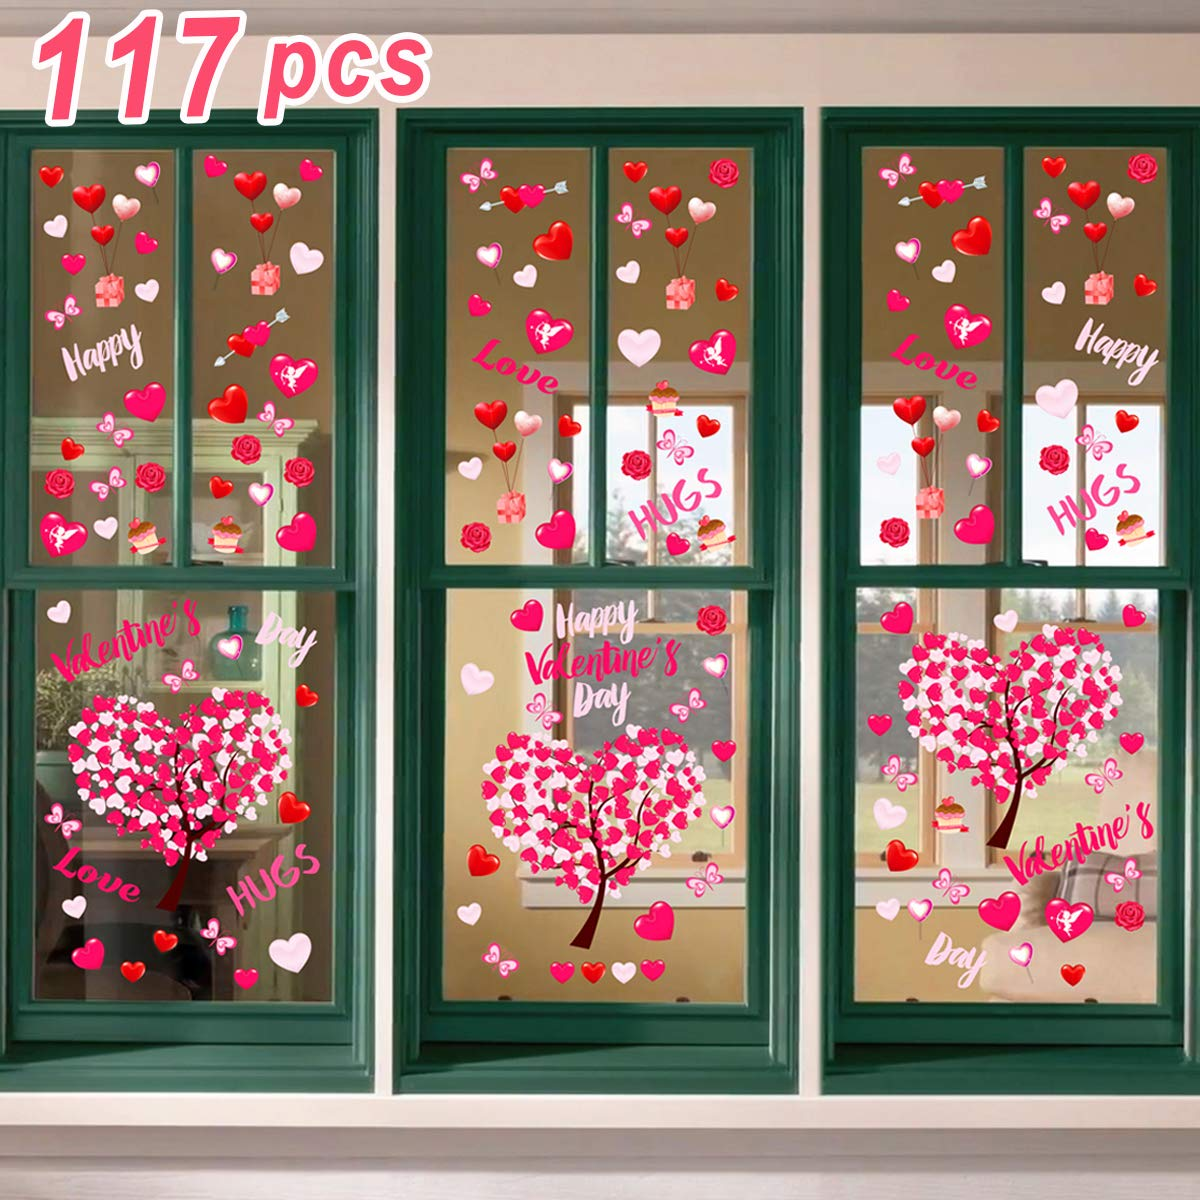 Ivenf Valentines Day Decorations Heart Window Clings Decor Kids School Home Office Large Valentines Hearts Accessories Birthday Party Supplies Gifts